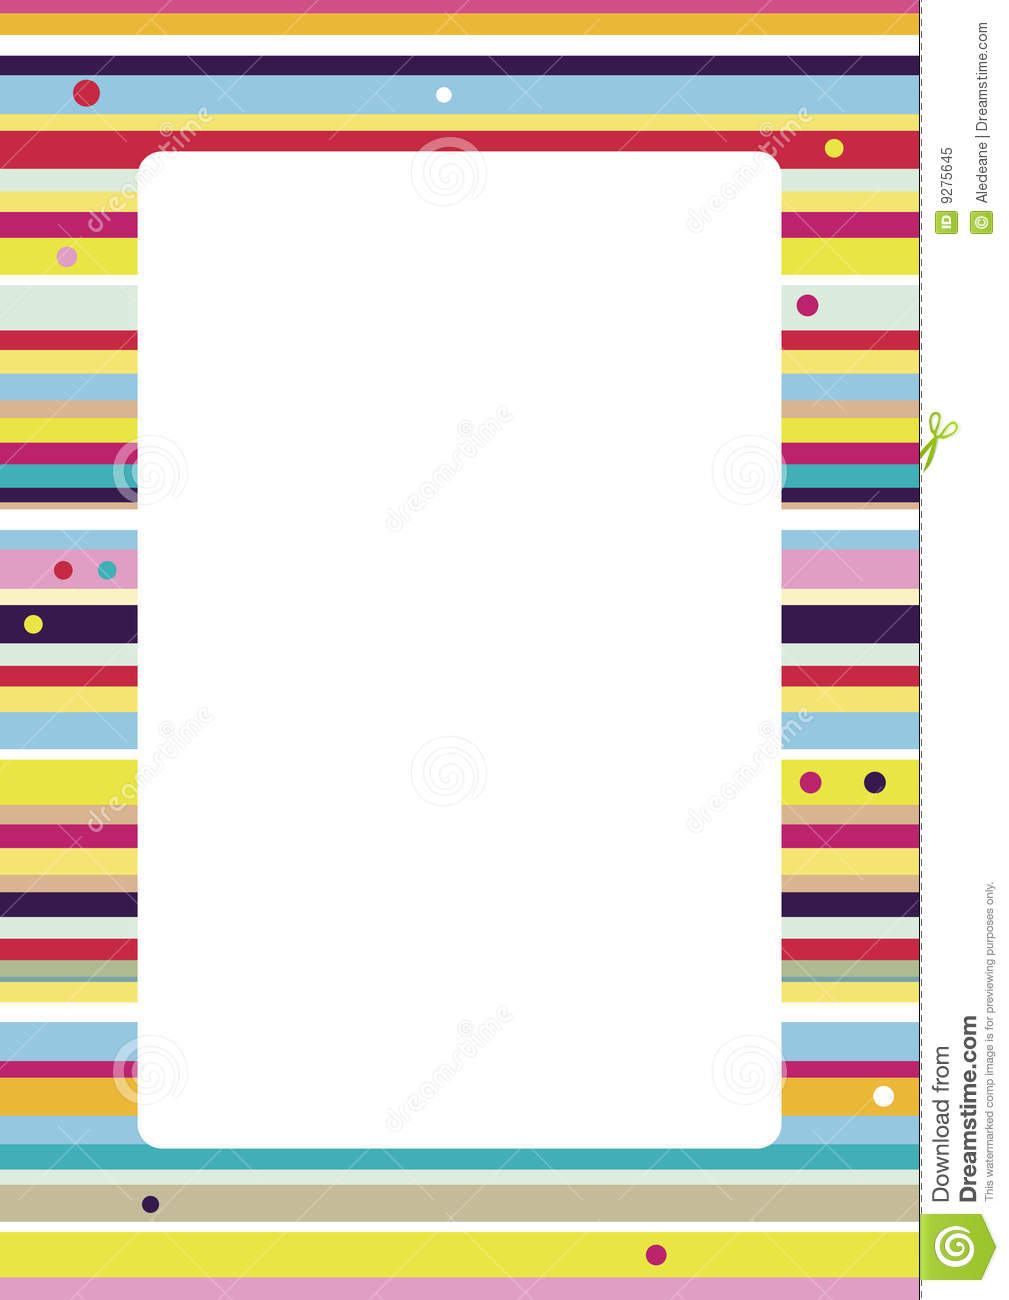 Colorful Stripes Background Royalty Free Stock Photo - Image: 9275645